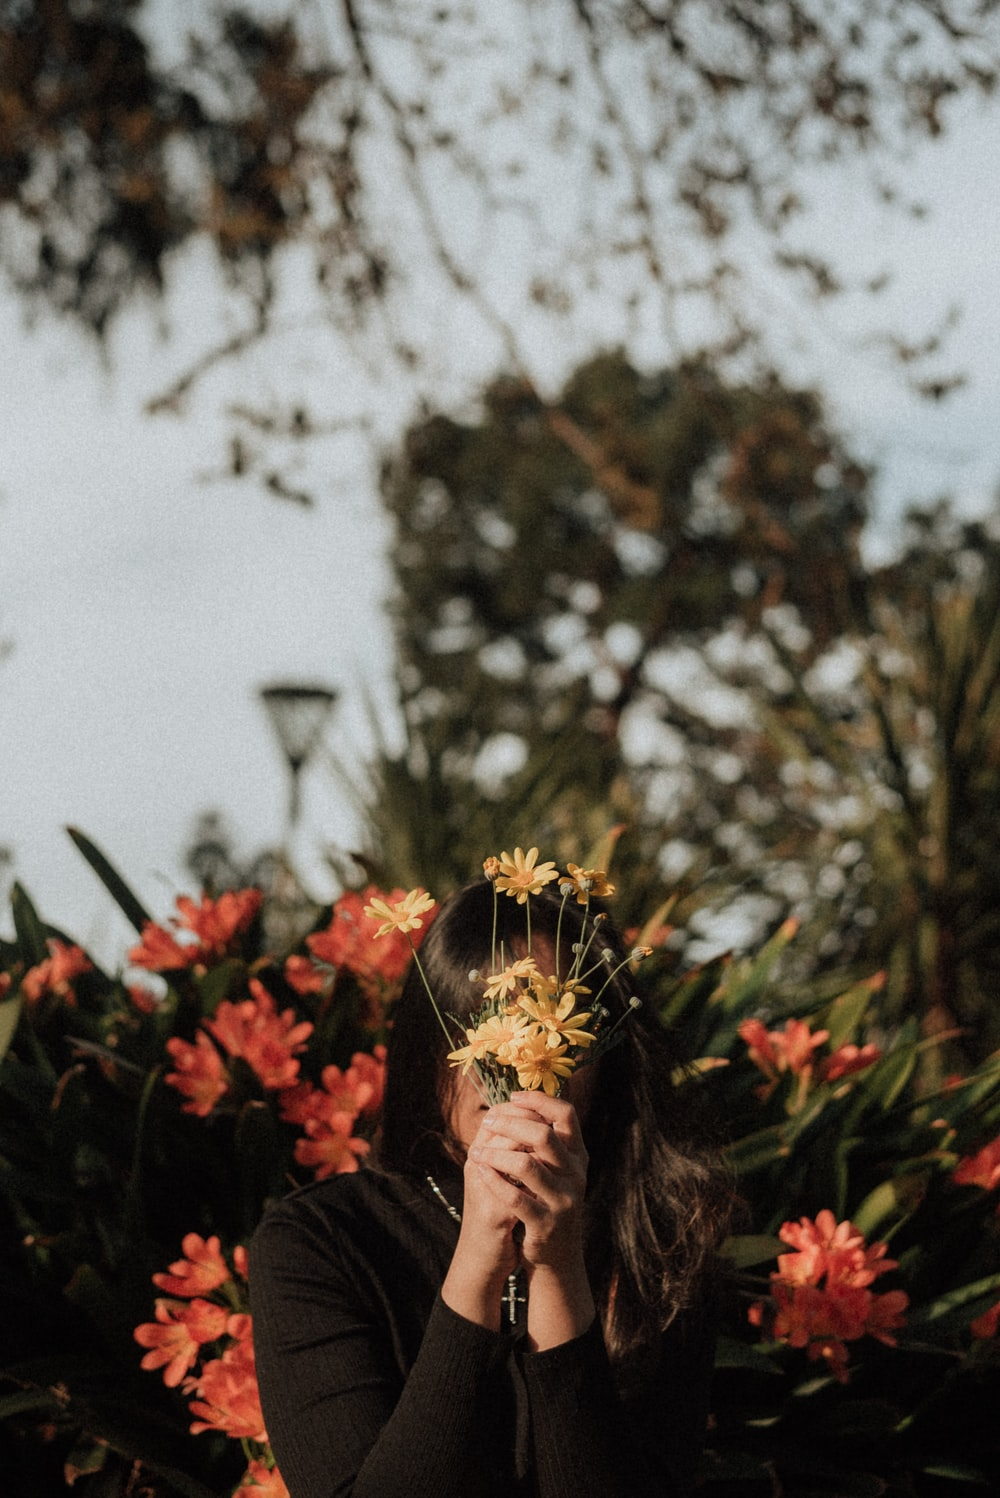 Grunge Aesthetic Pictures Download Free Images On Unsplash